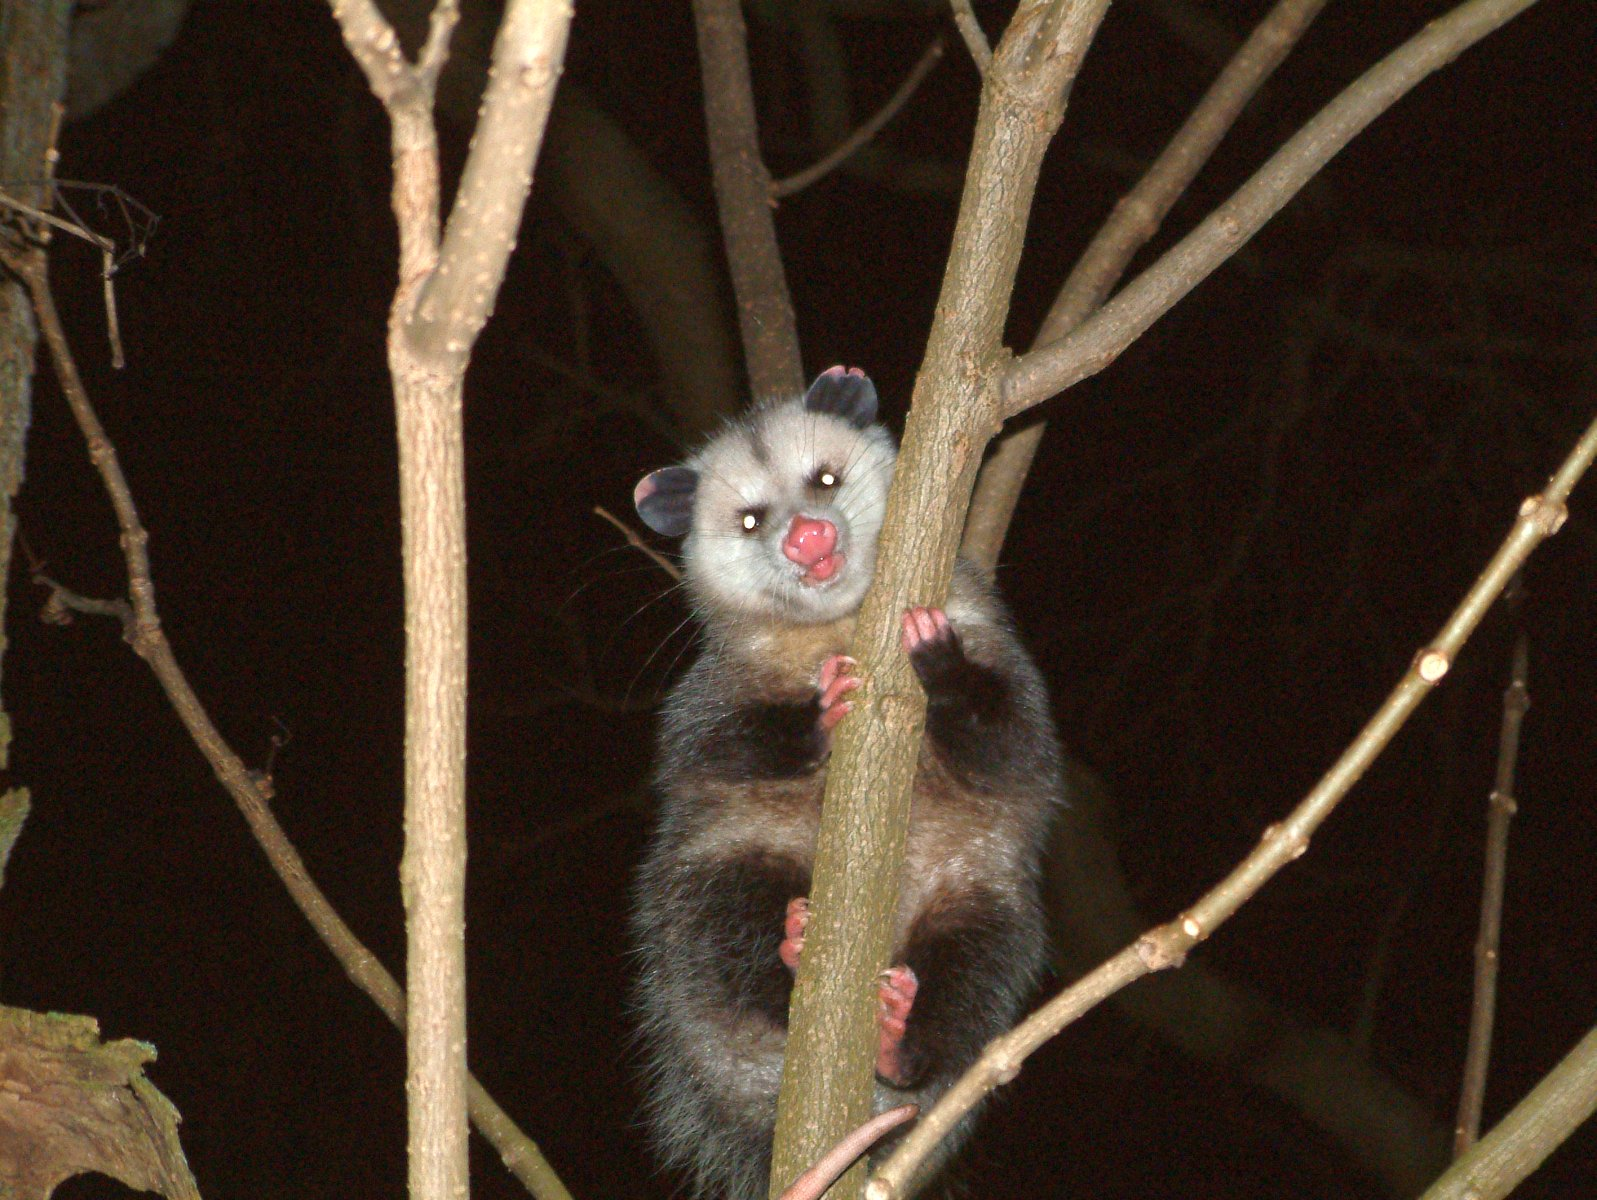 There's a possum in the tree!